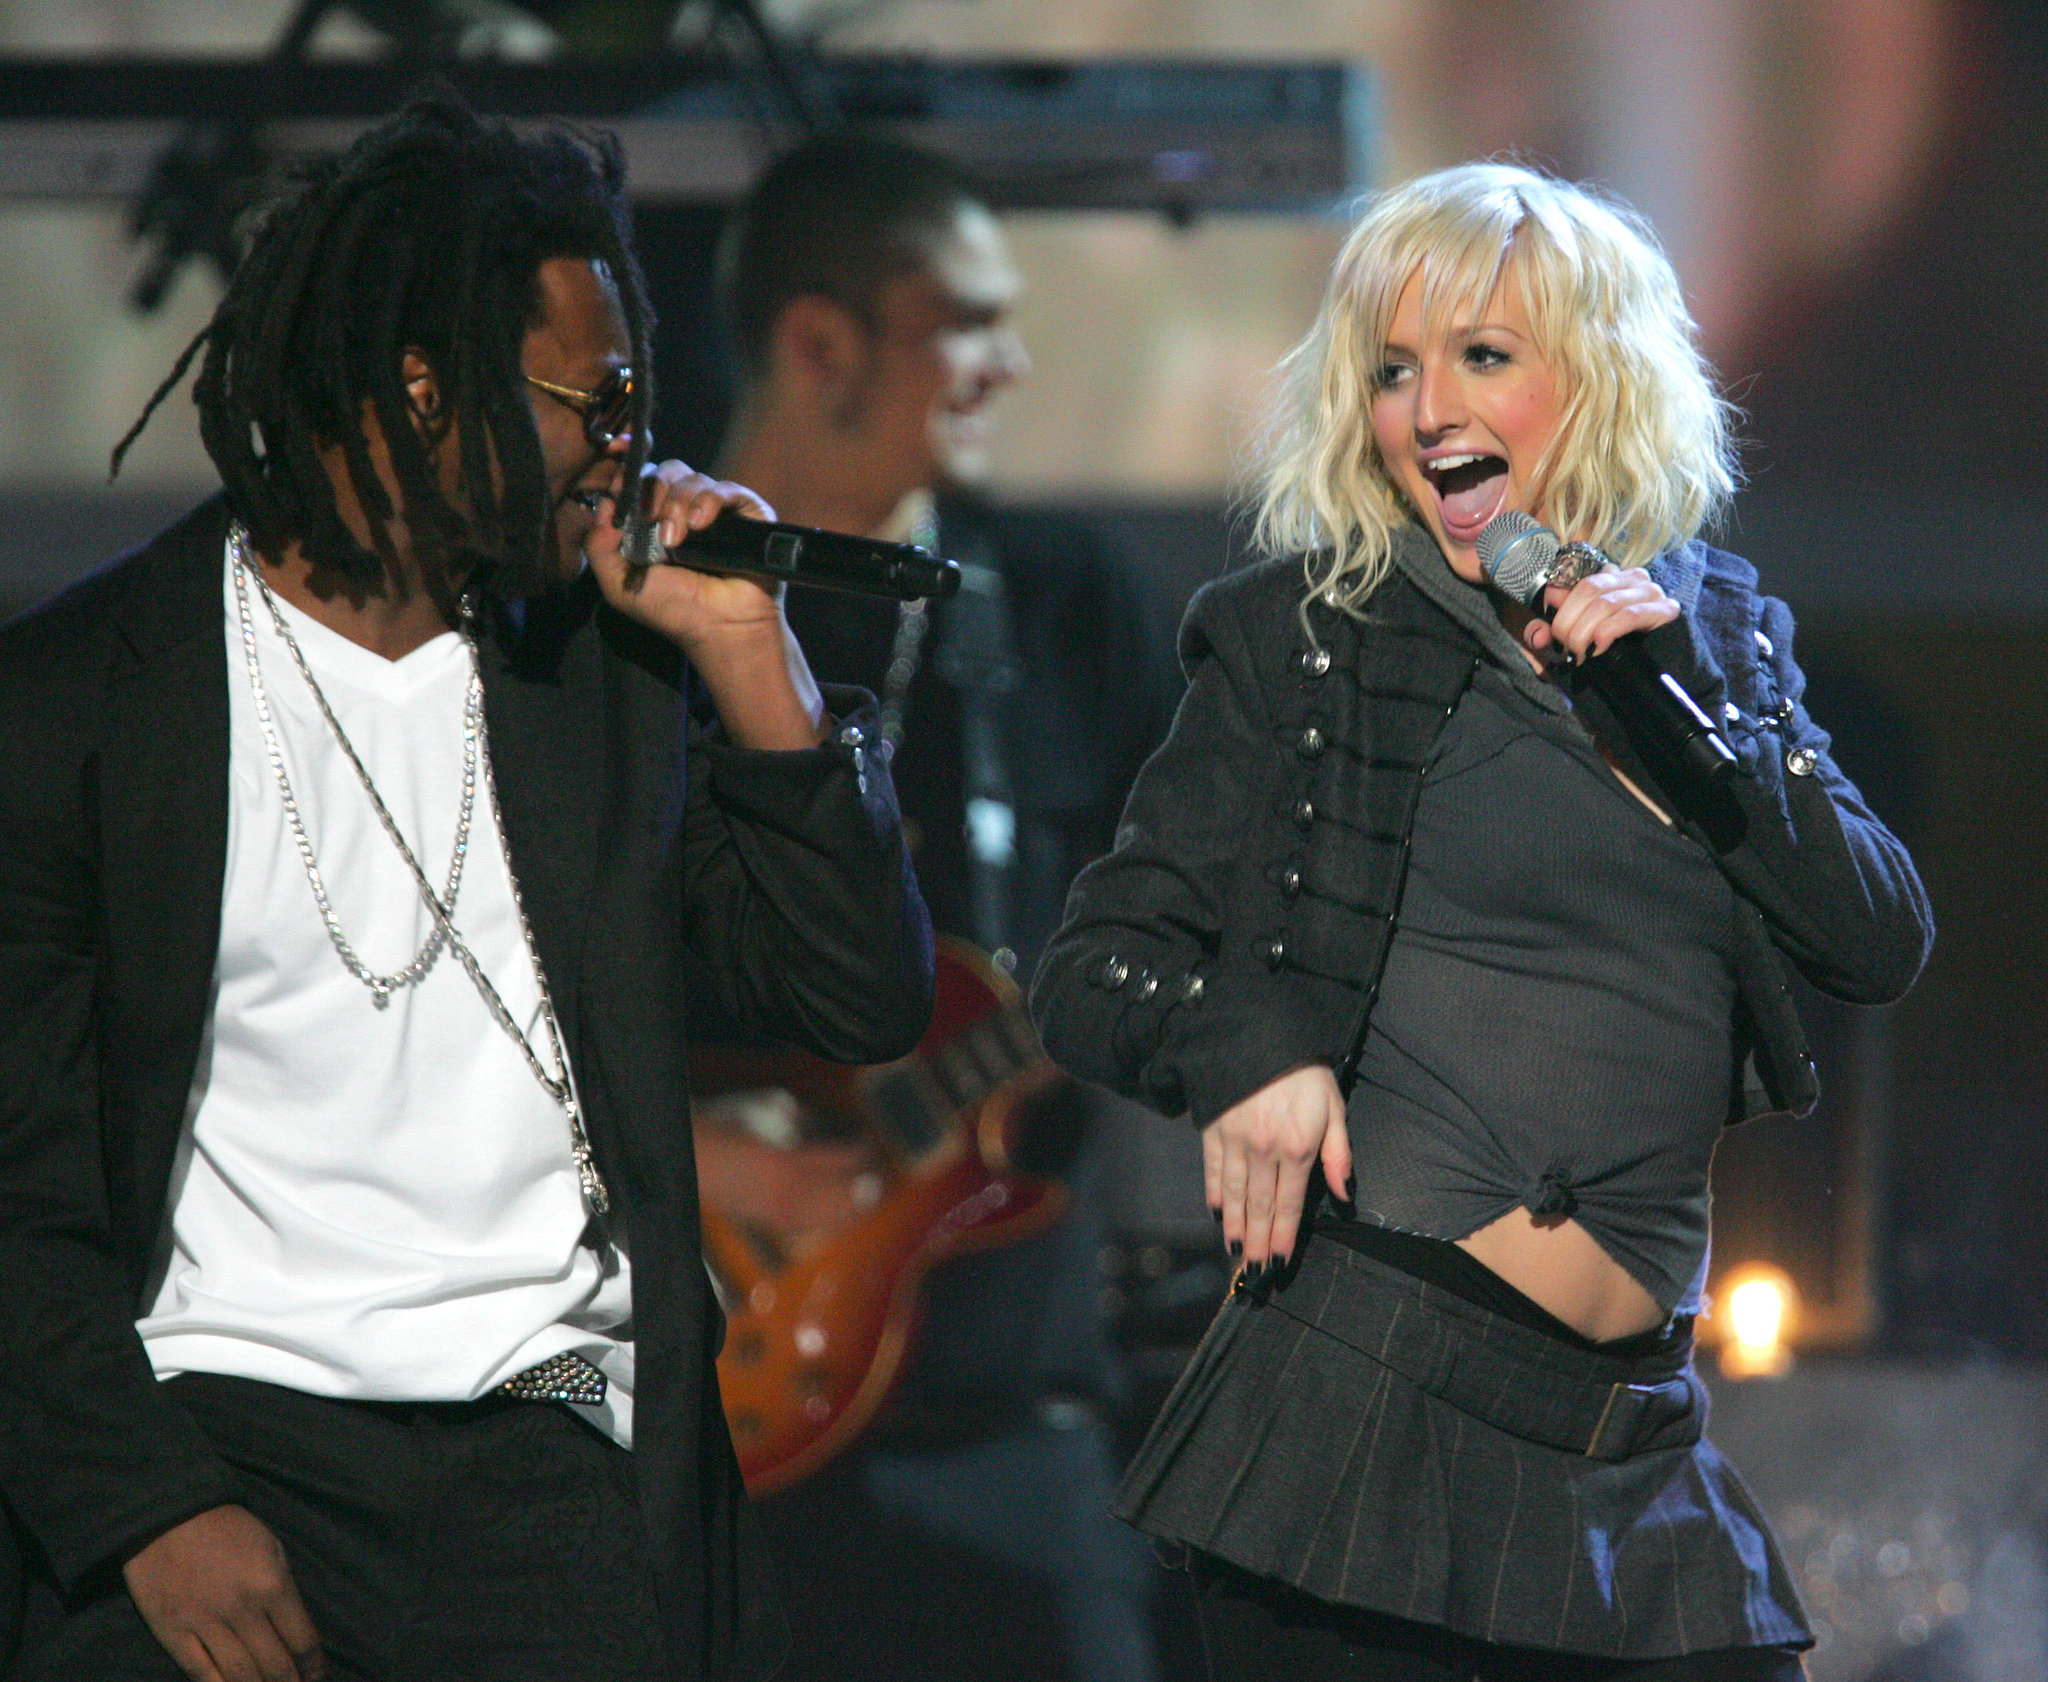 In December 2005, Ashlee Simpson performed with Pretty Ricky at the Billboard Music Awards.